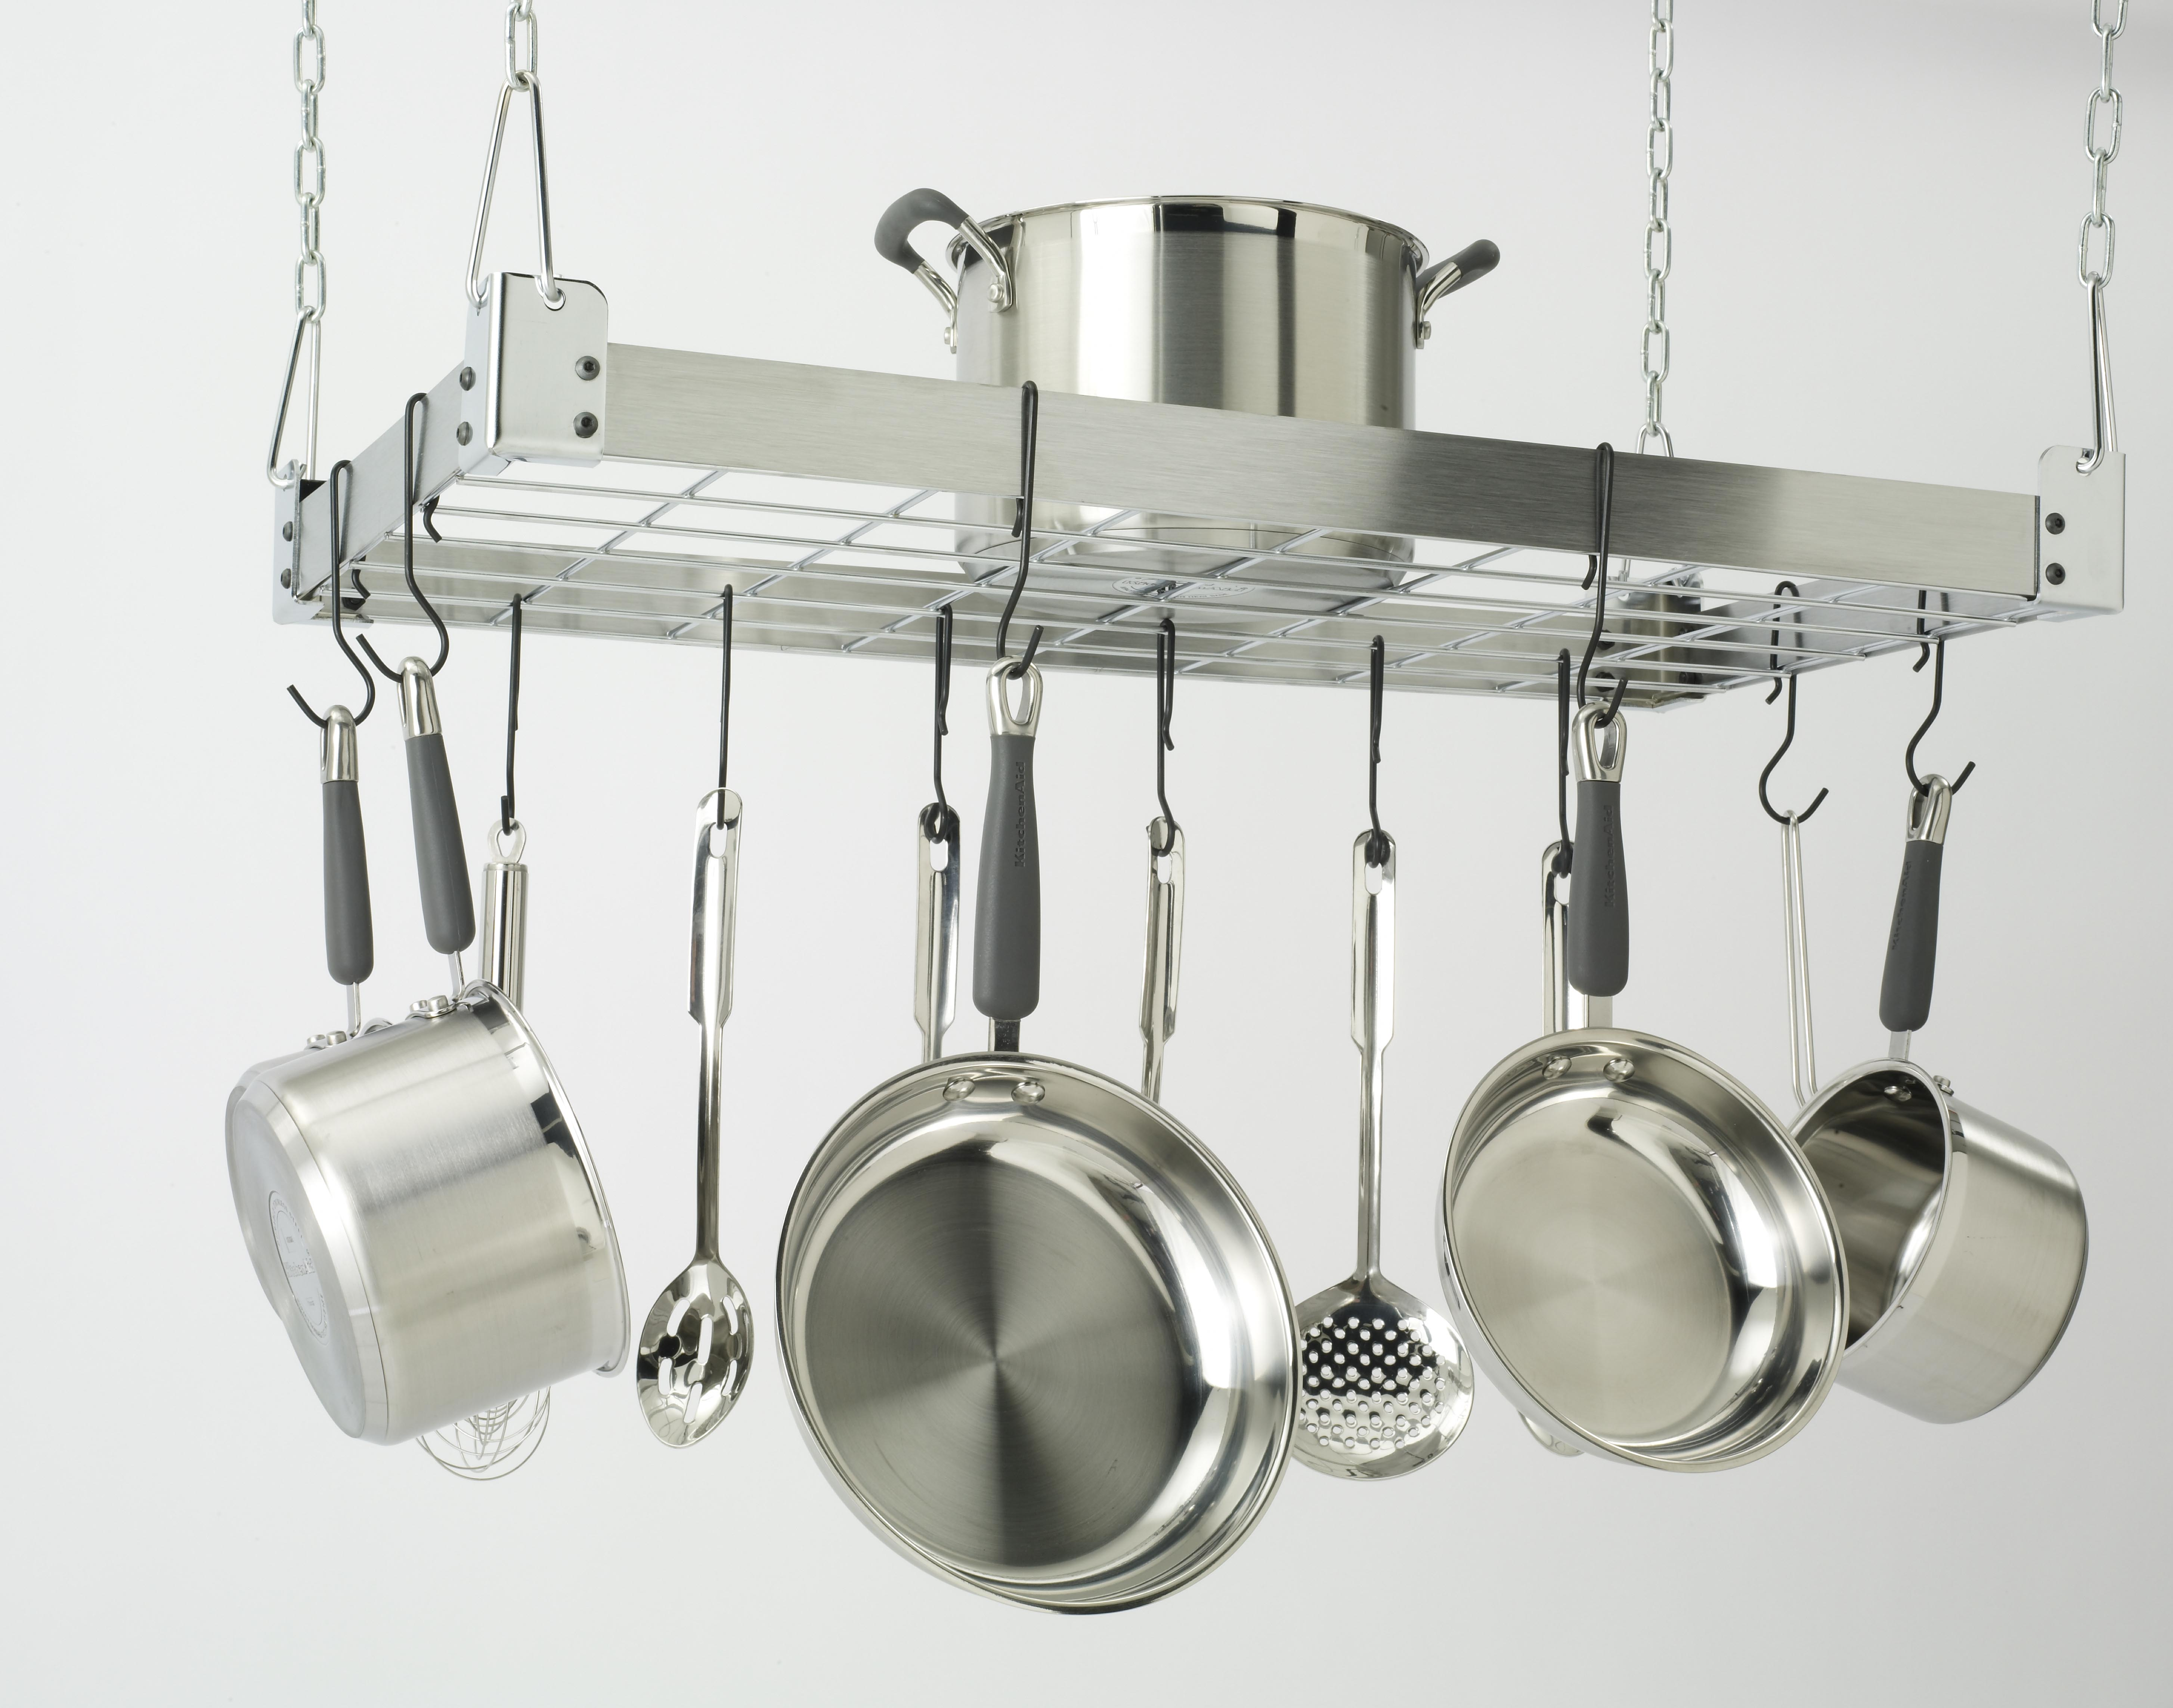 out lids pan rack inserts hanging on steel shelving organizers storage units decoration pull kitchen locking classy hardware pans stainless wine frying cabinet charming pots rev shelves record for shelf file door wonderful drawer organizer metal best top home racks hang pot old room awesome and closet